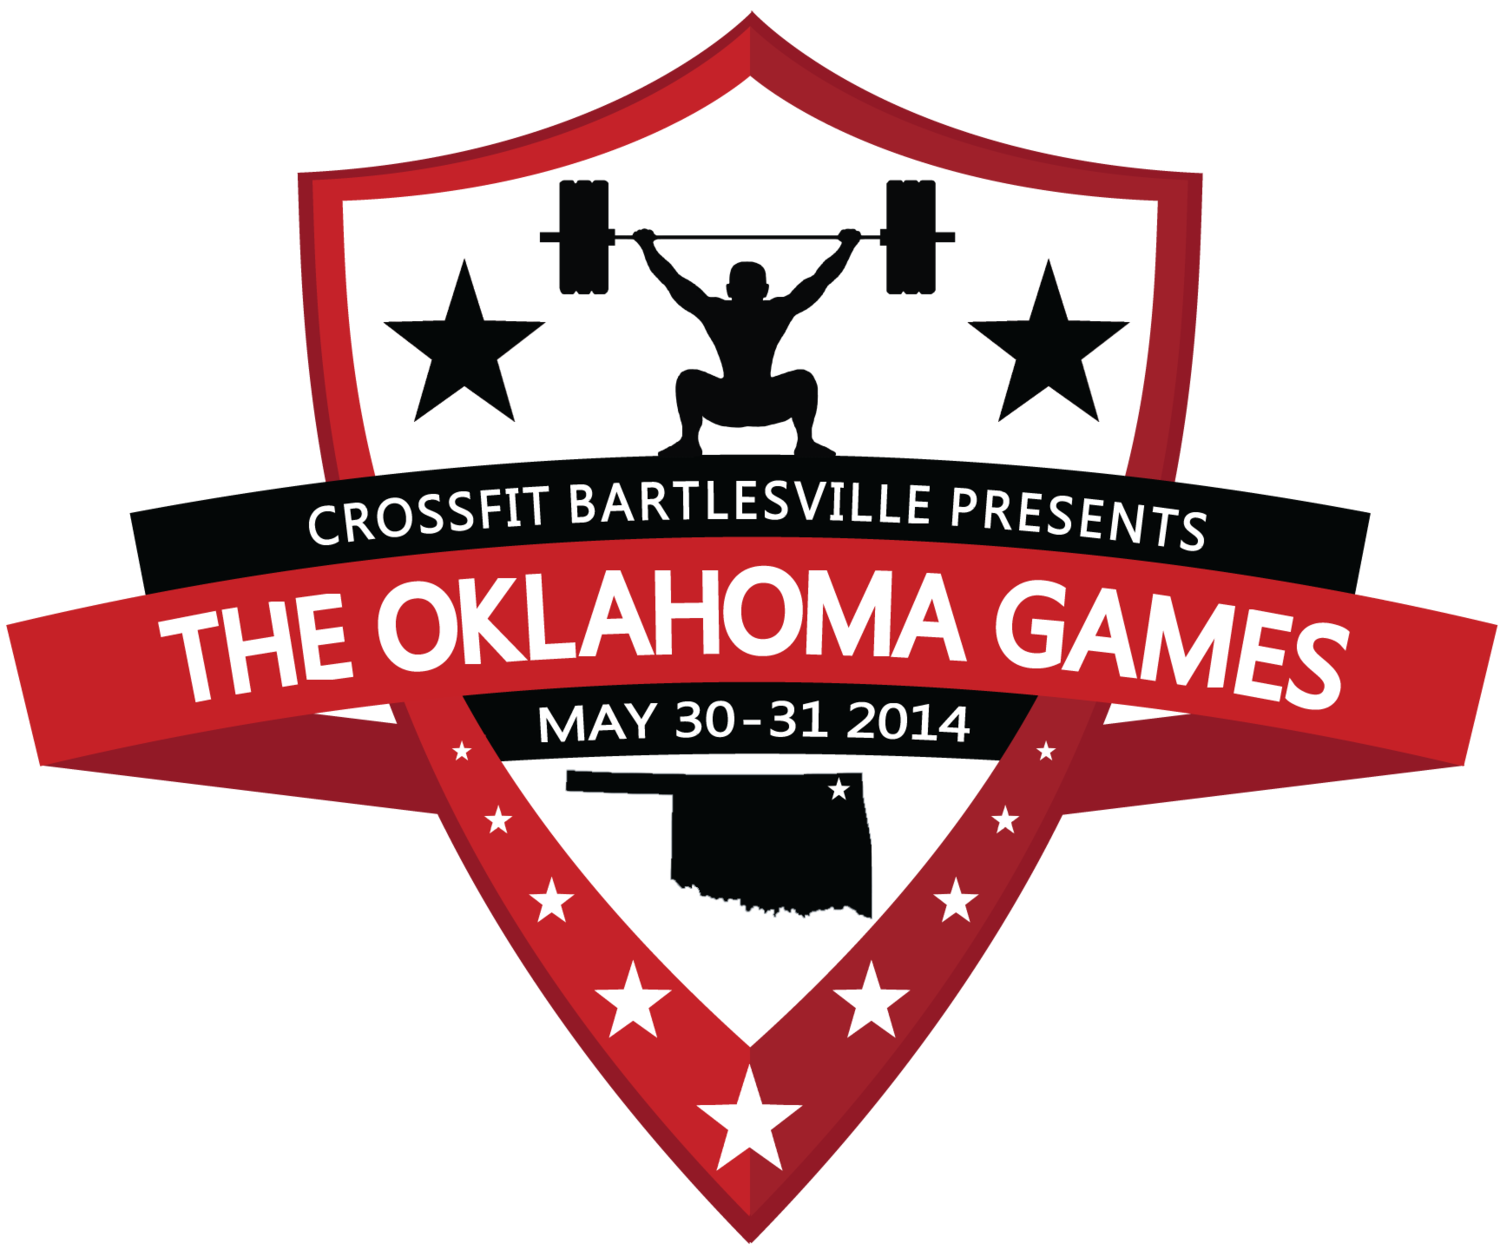 THE OKLAHOMA GAMES